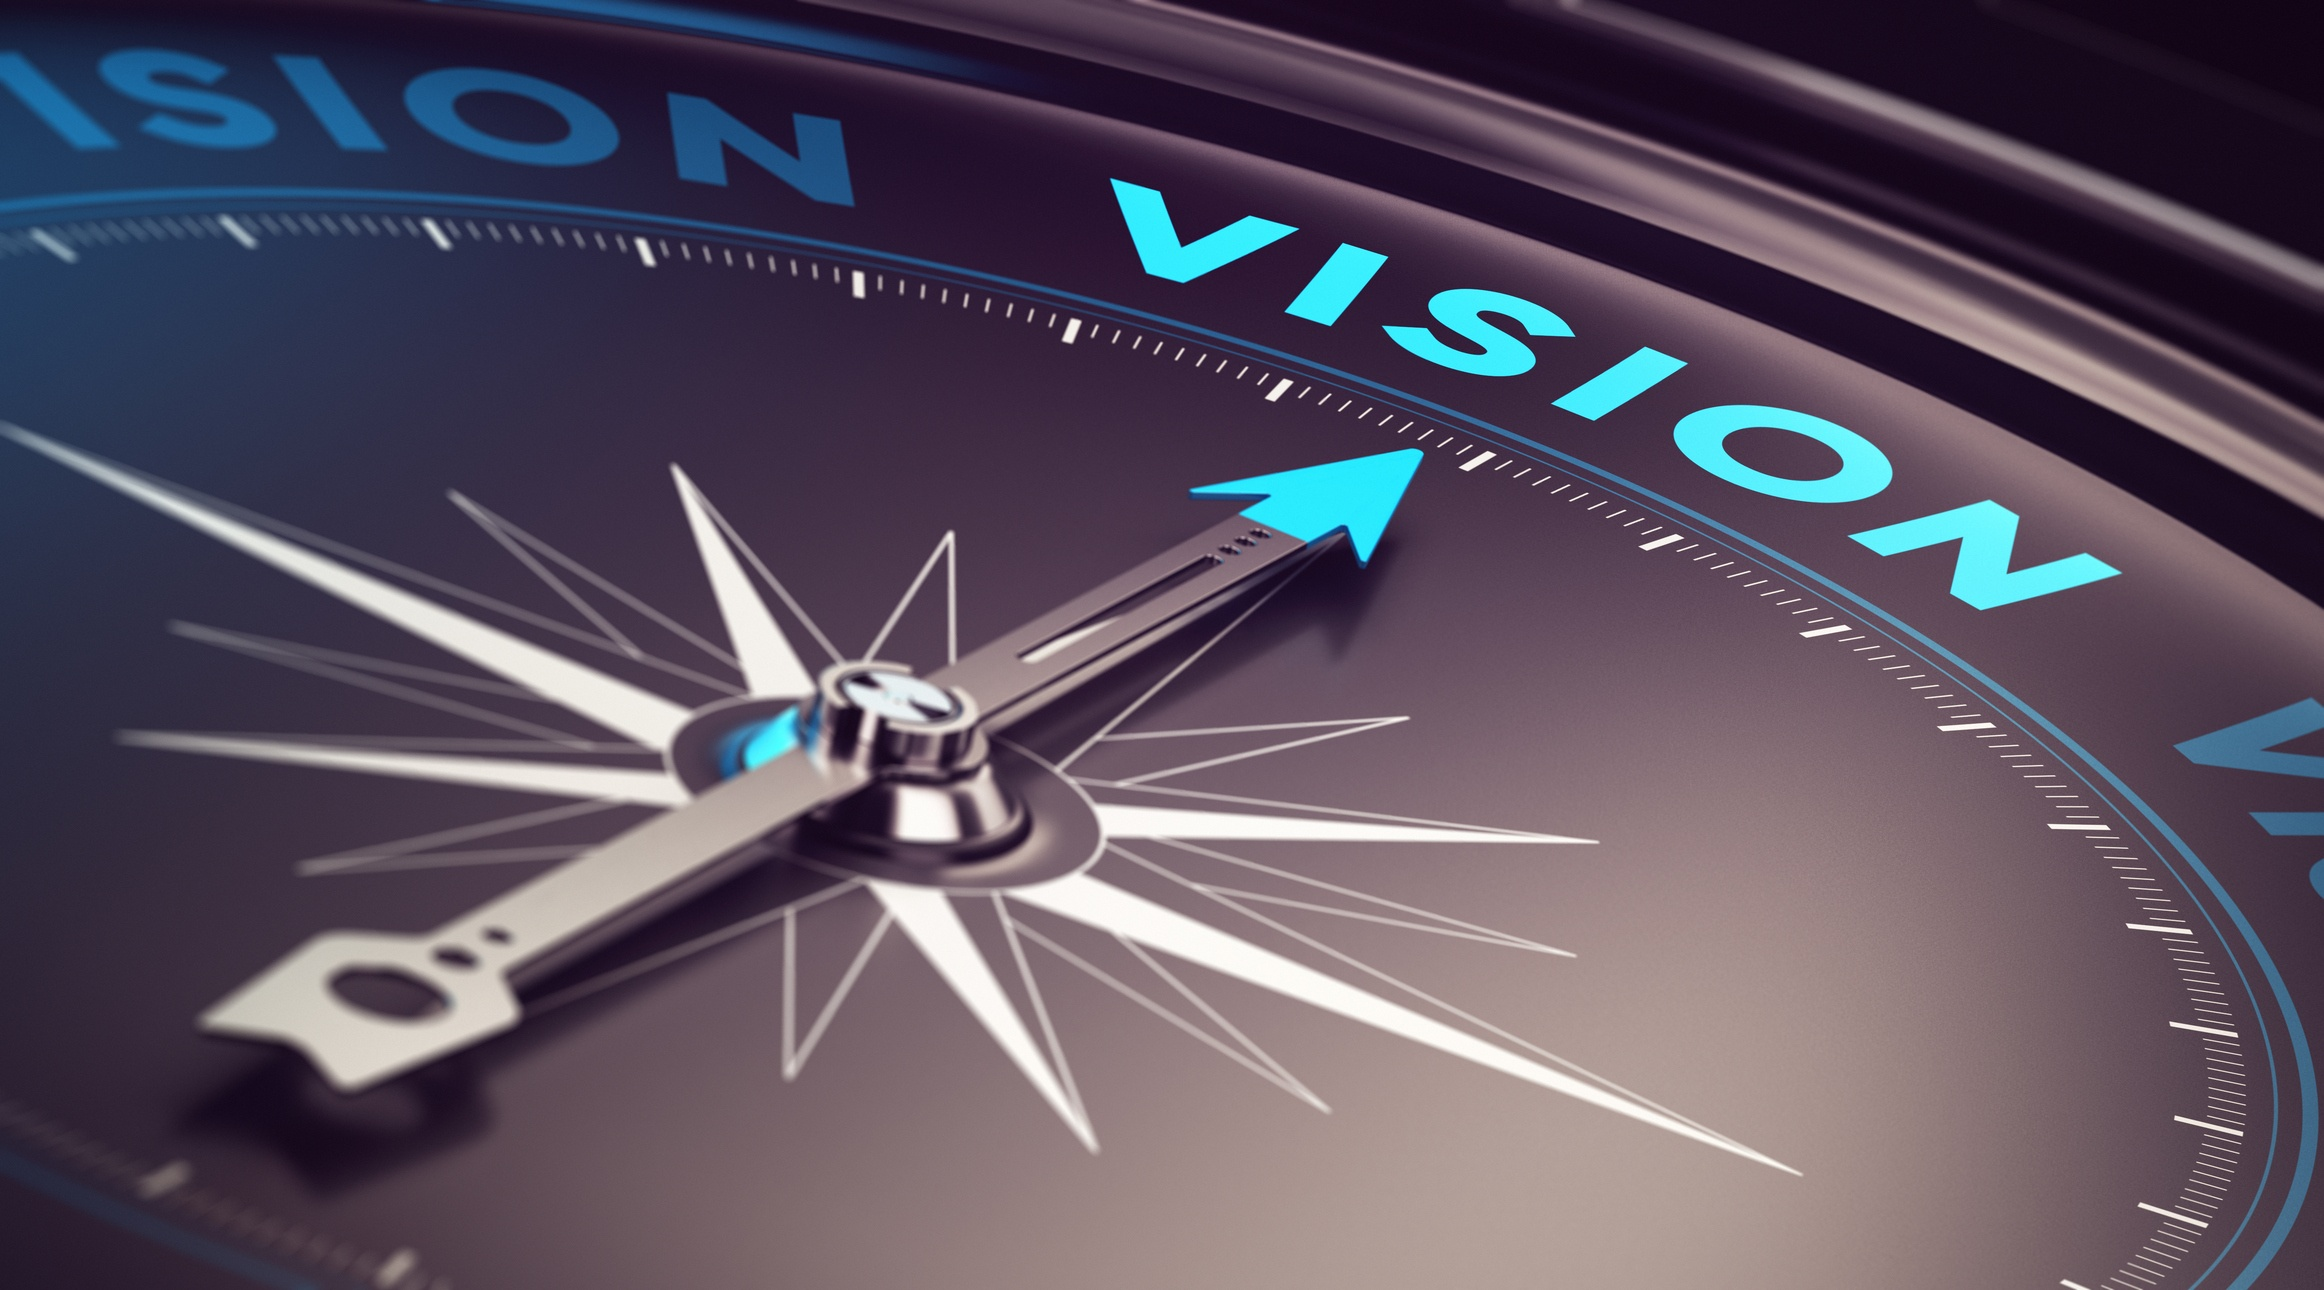 Business vision must be backed with practical action